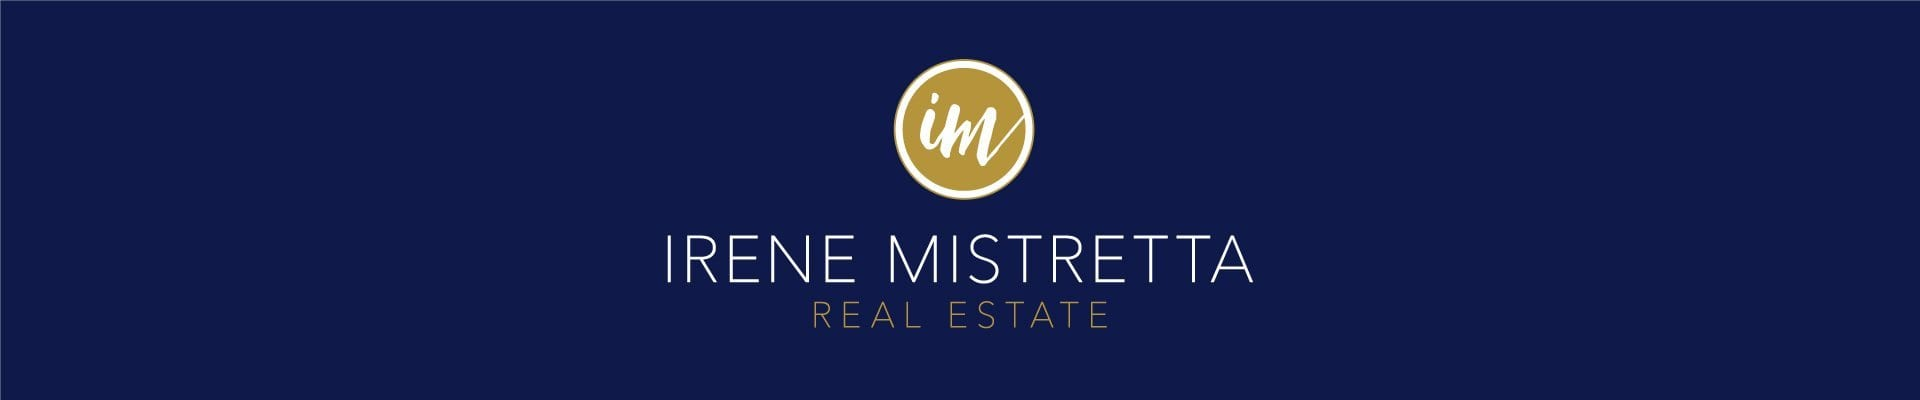 PERSONAL BRANDING WEBSITE FOR REAL ESTATE AGENT